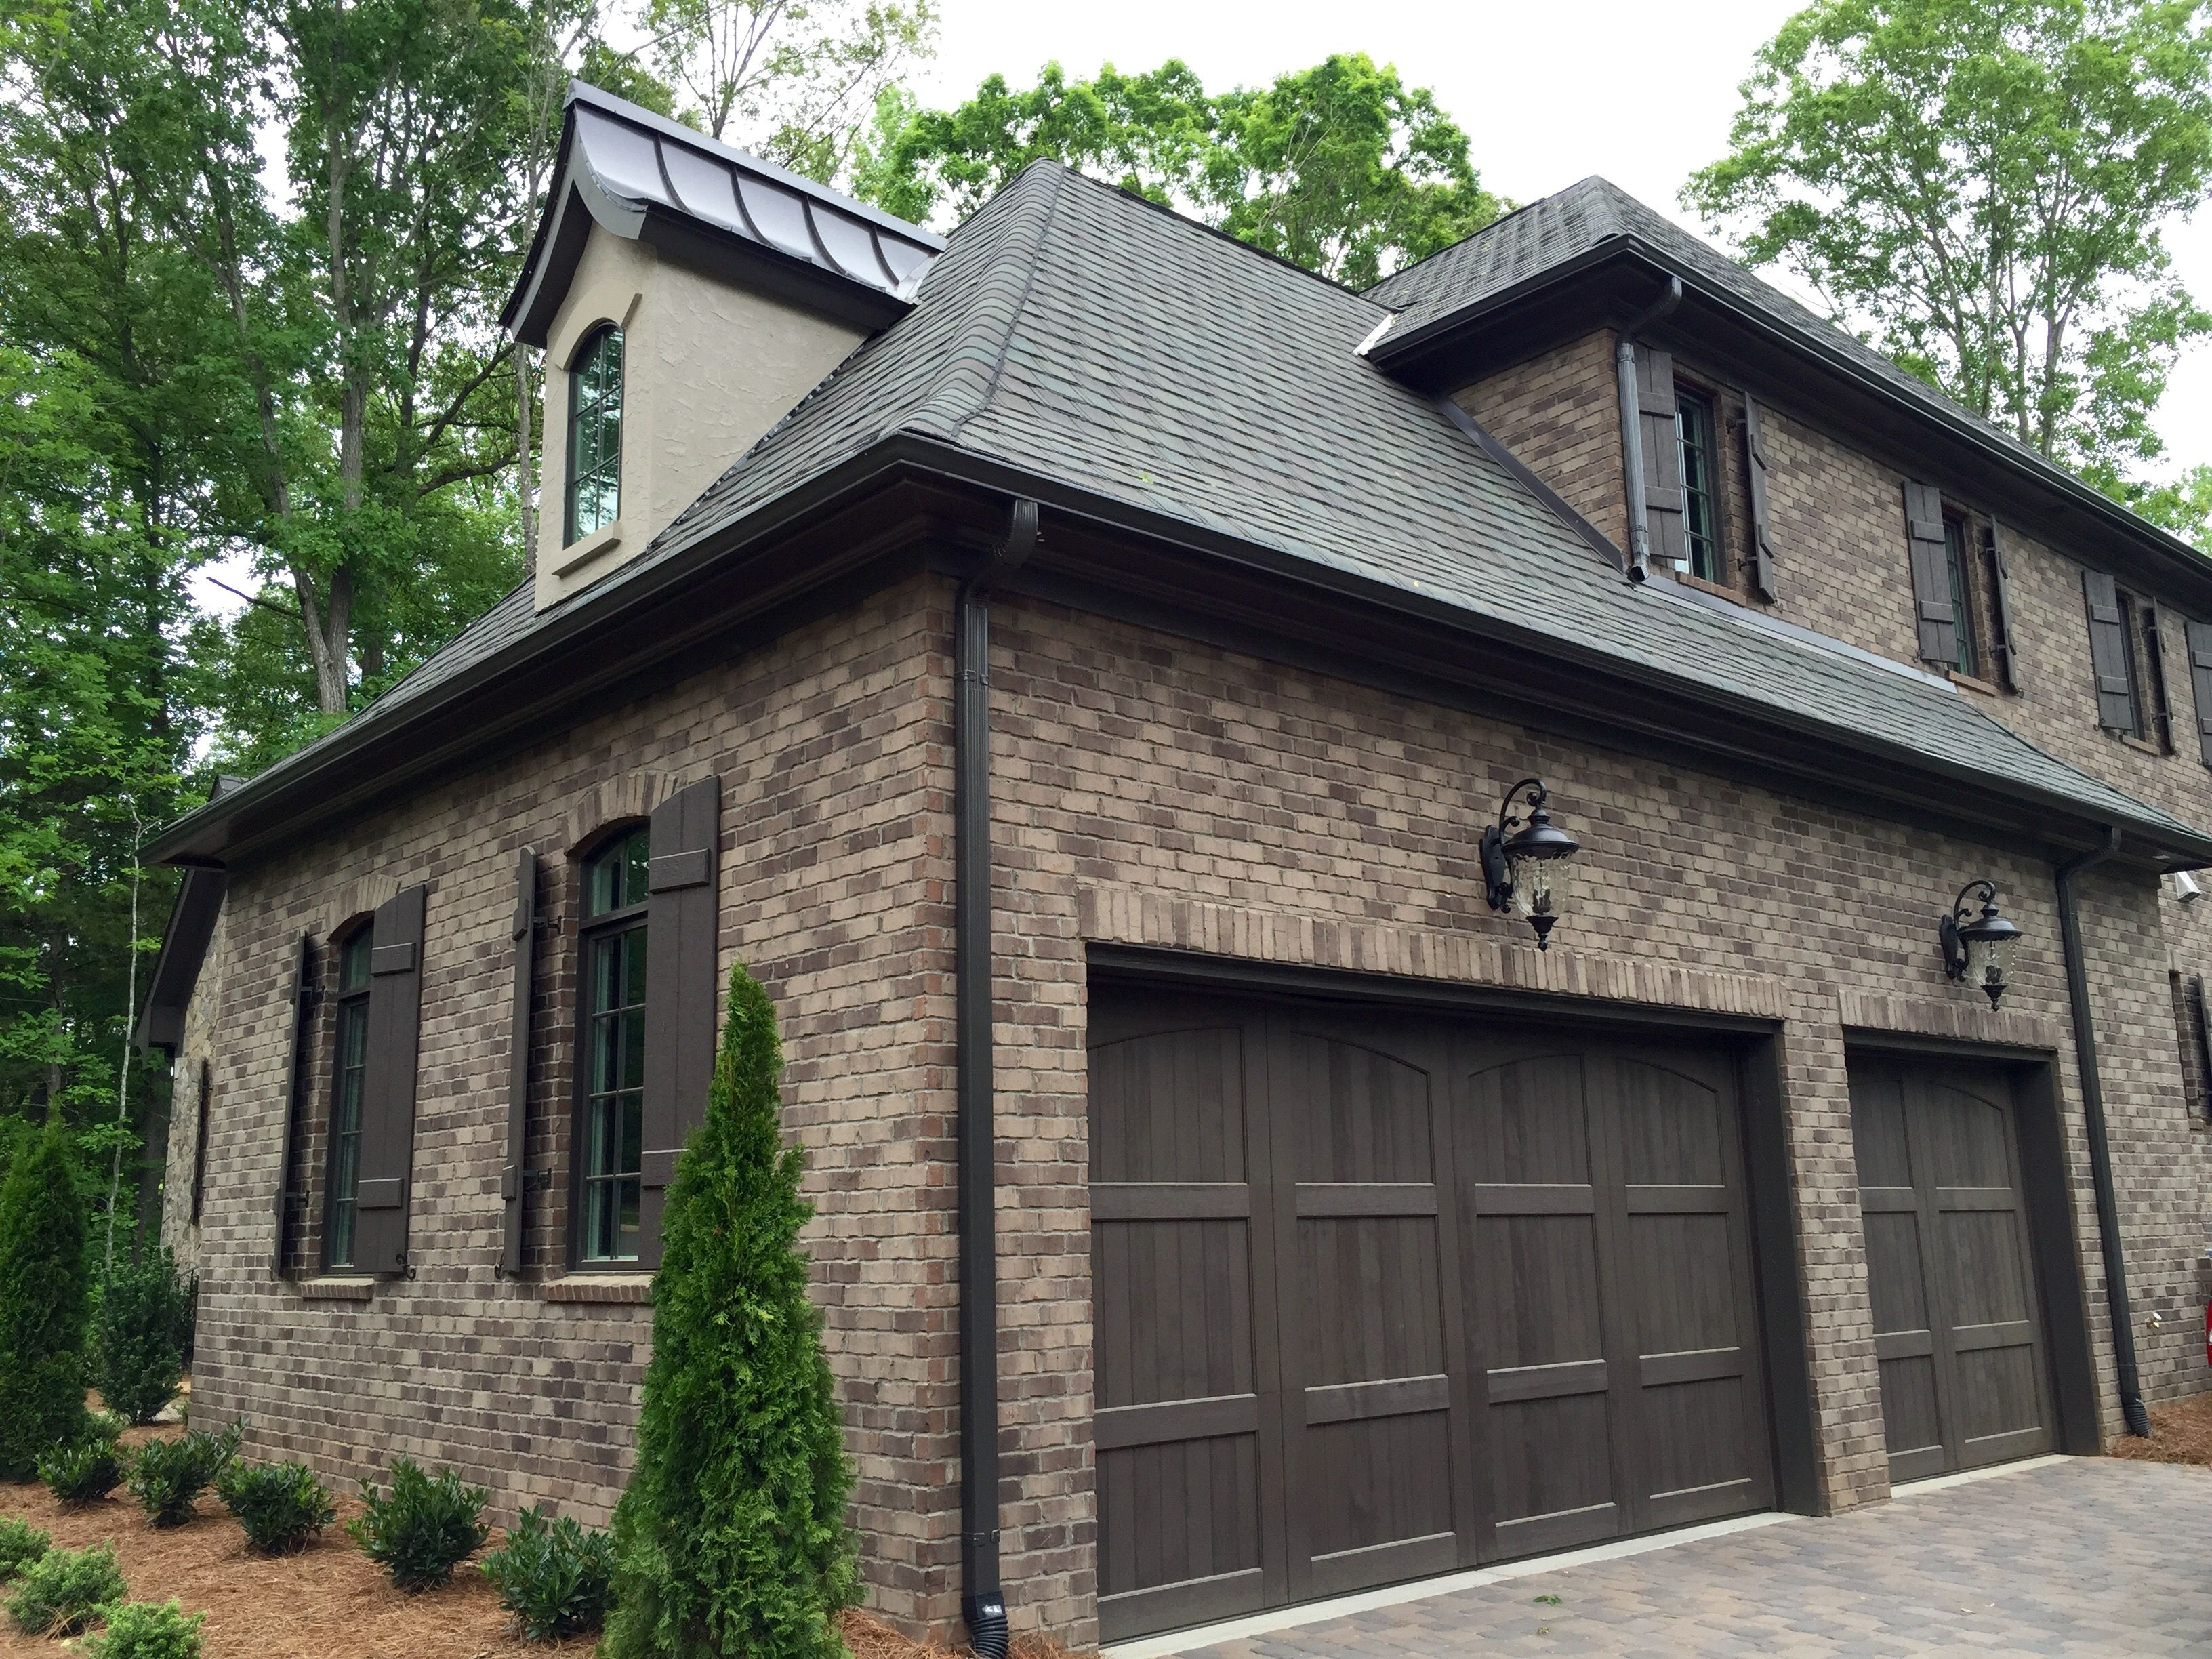 Arh asheville 1131f plan exterior 40 stone oakridge for Black brick on house